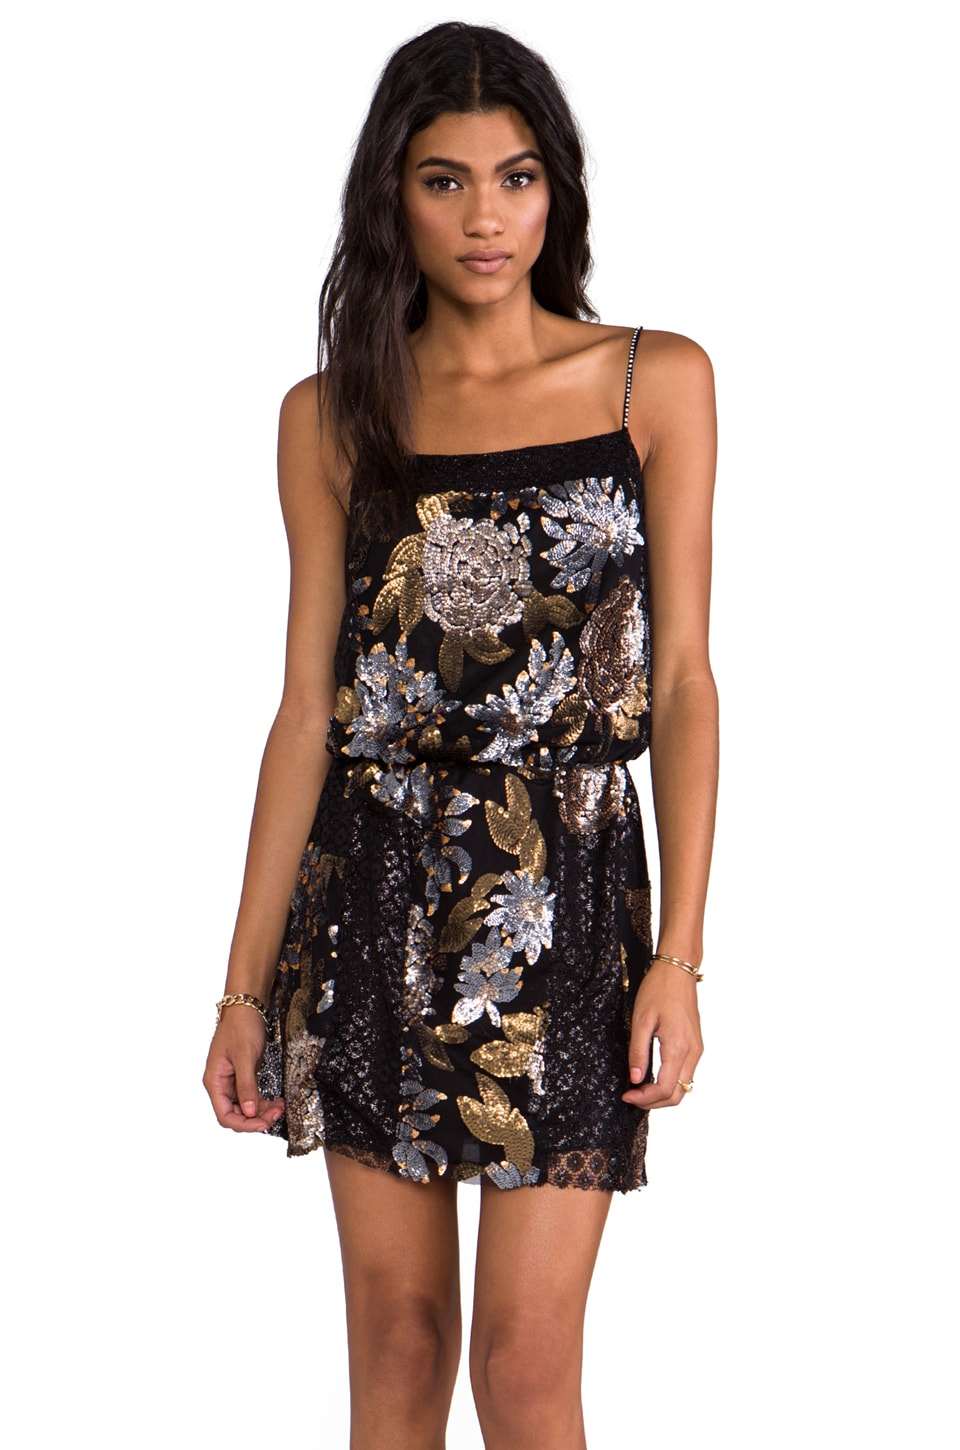 Anna Sui RUNWAY Nuits De Paris Sequin Mesh and Lace Dress in Black Multi